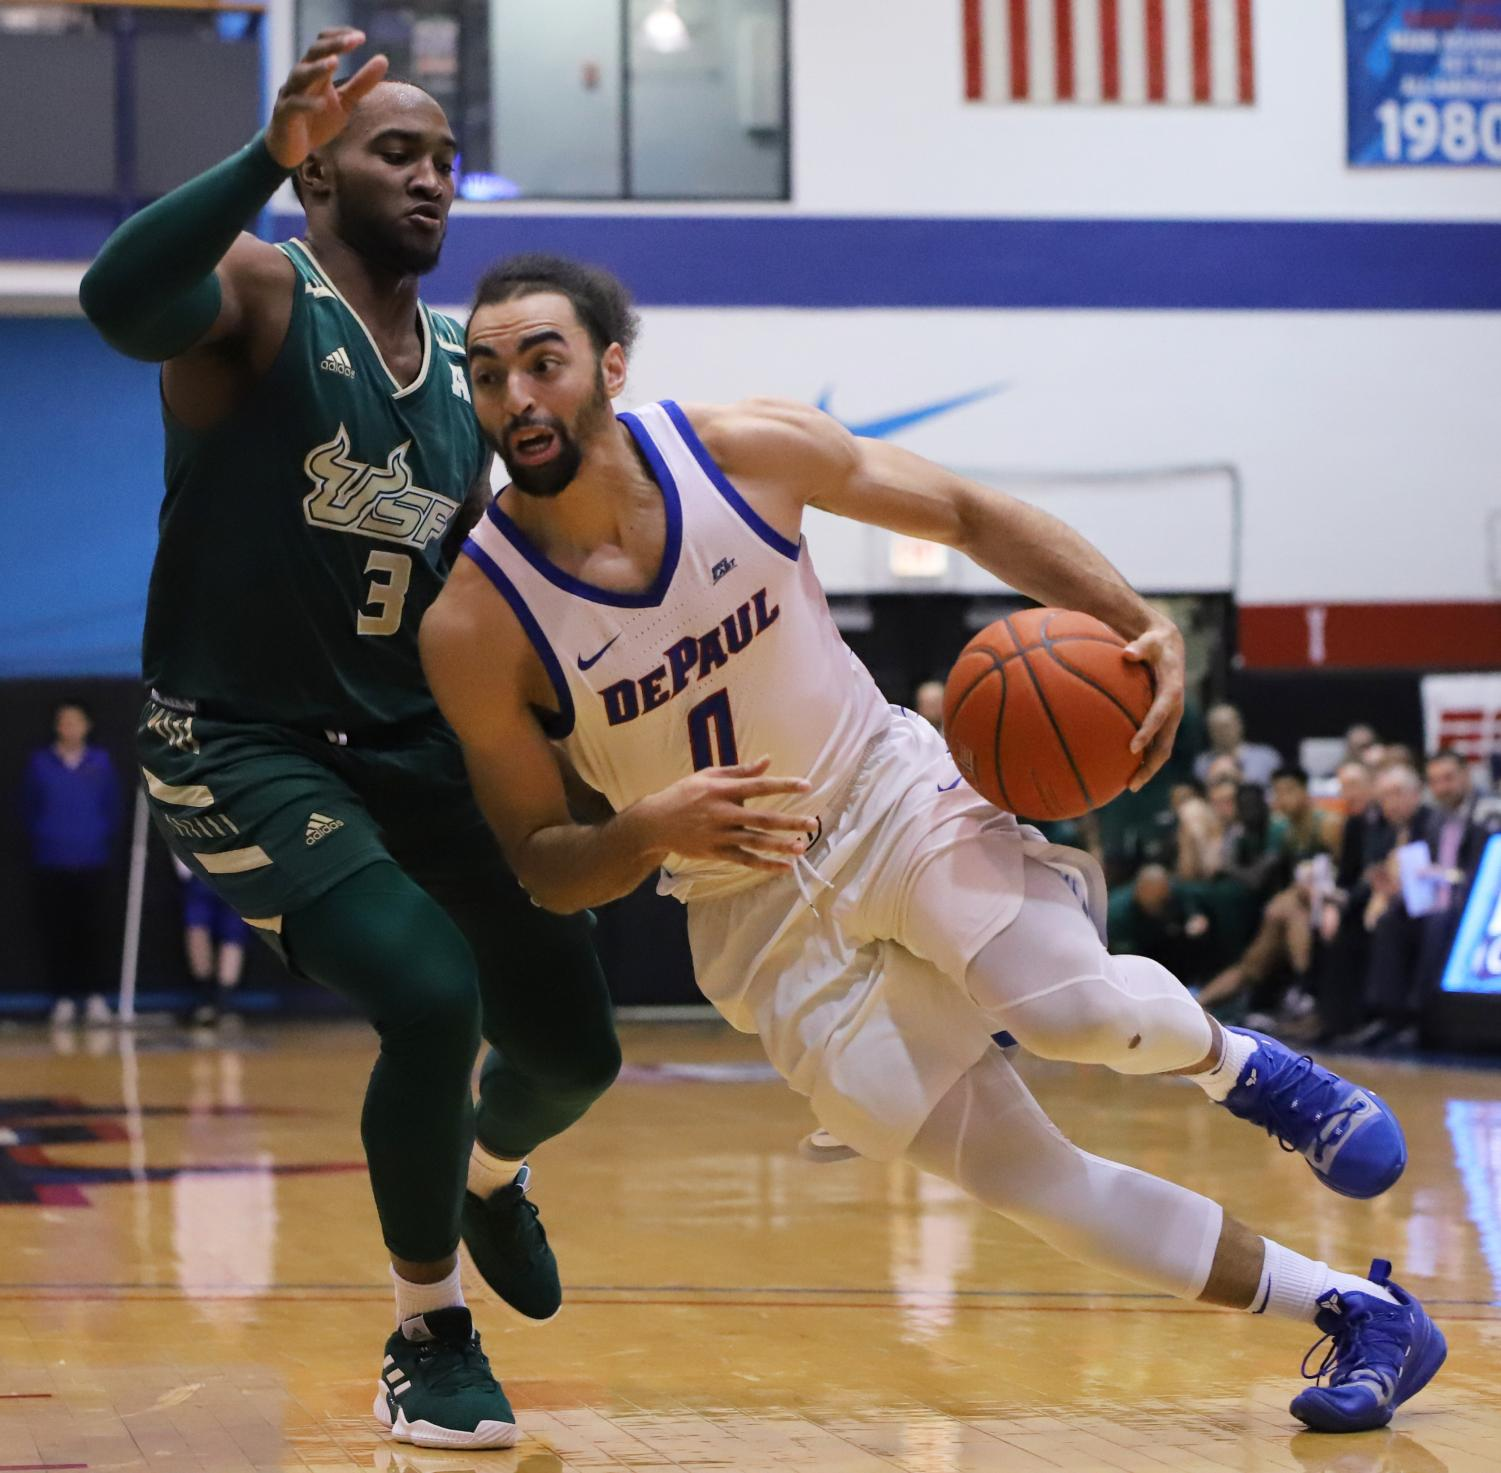 DePaul+junior+Lyrik+Shreiner+drives+to+the+basket+against+USF+guard+Laquincy+Rideau+during+the+Blue+Demons+100-96+victory+in+game+two+of+the+CBI+finals.+Shreiner+finished+with+seven+points+and+seven+assists.+Alexa+Sandler+%7C+The+DePaulia